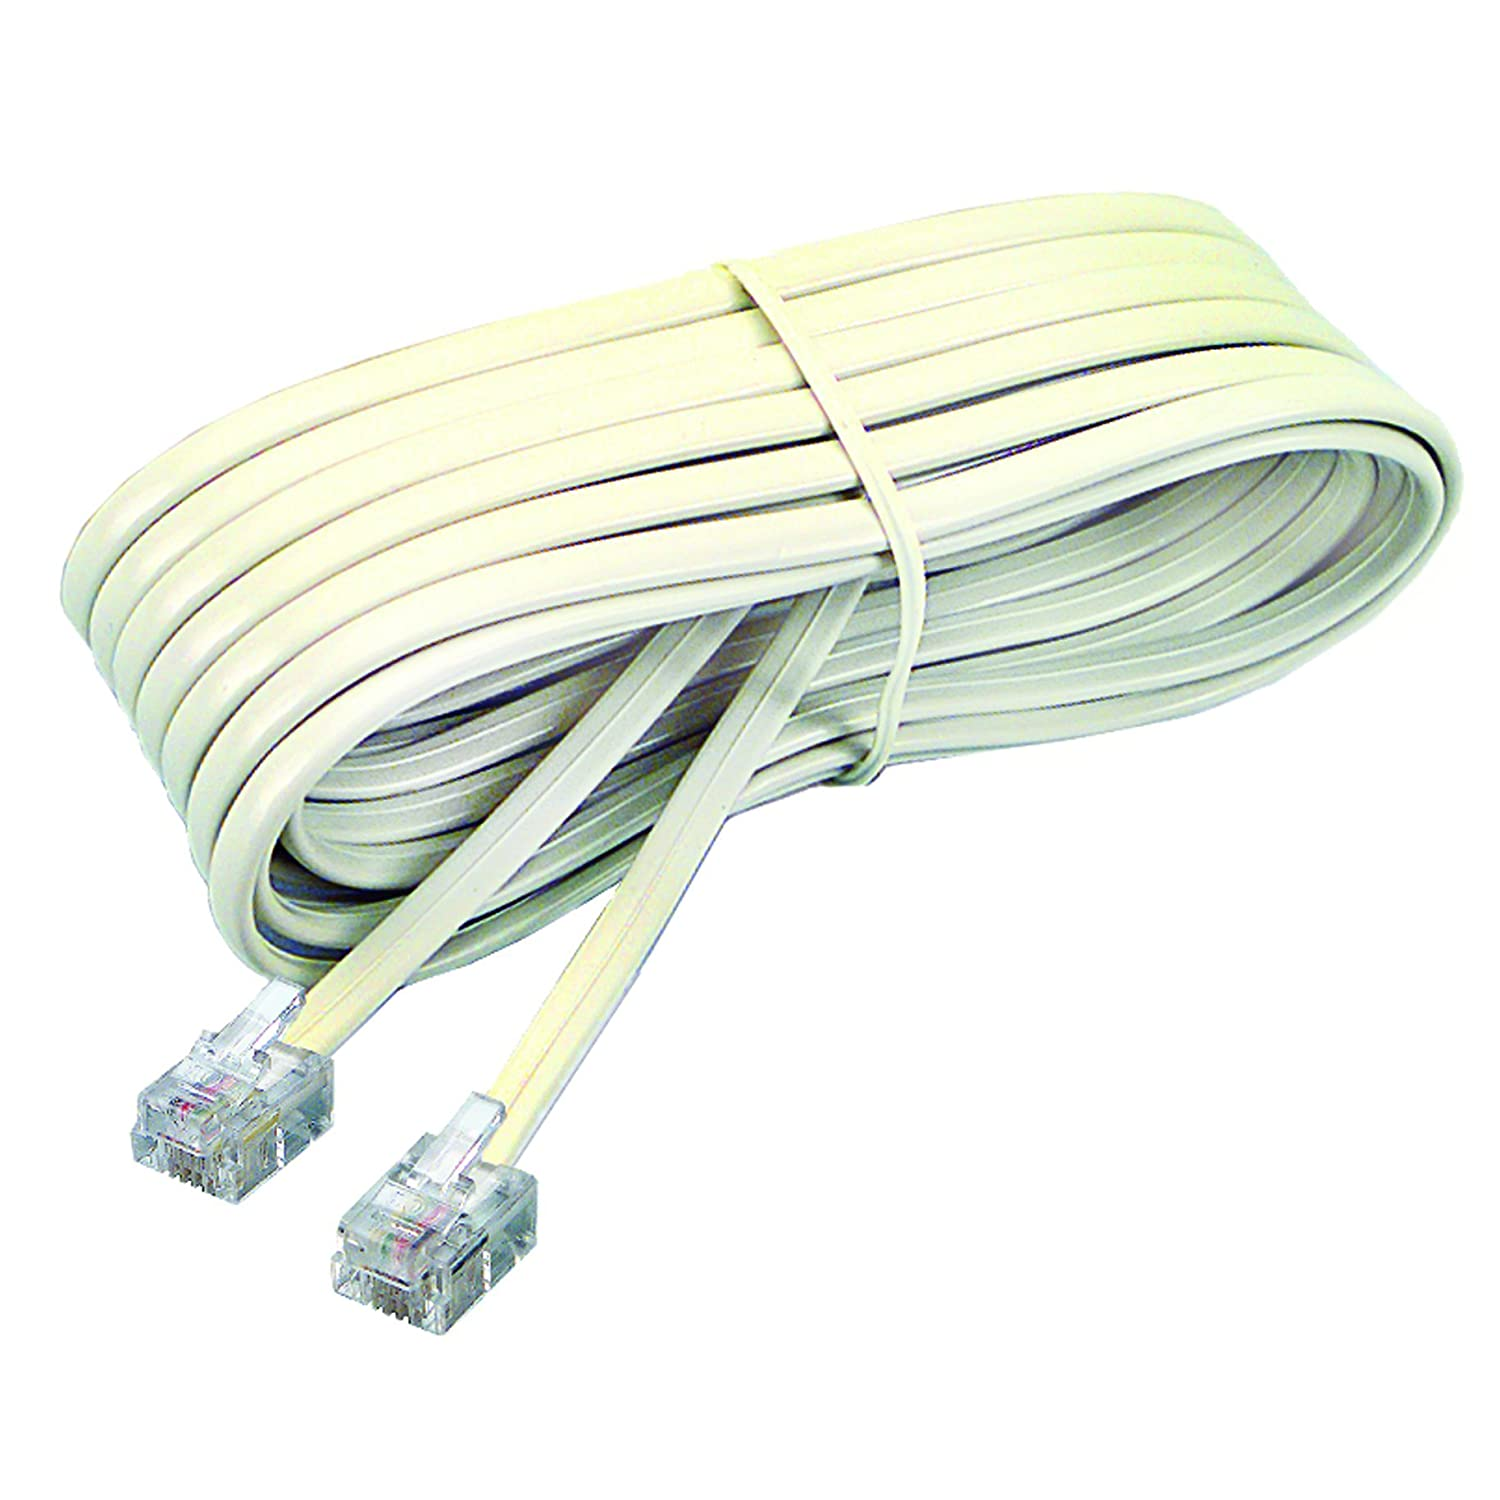 Softalk 04020 Phone Line Cord 25 Feet Ivory Landline Wiring Telephone Accessory Electronics